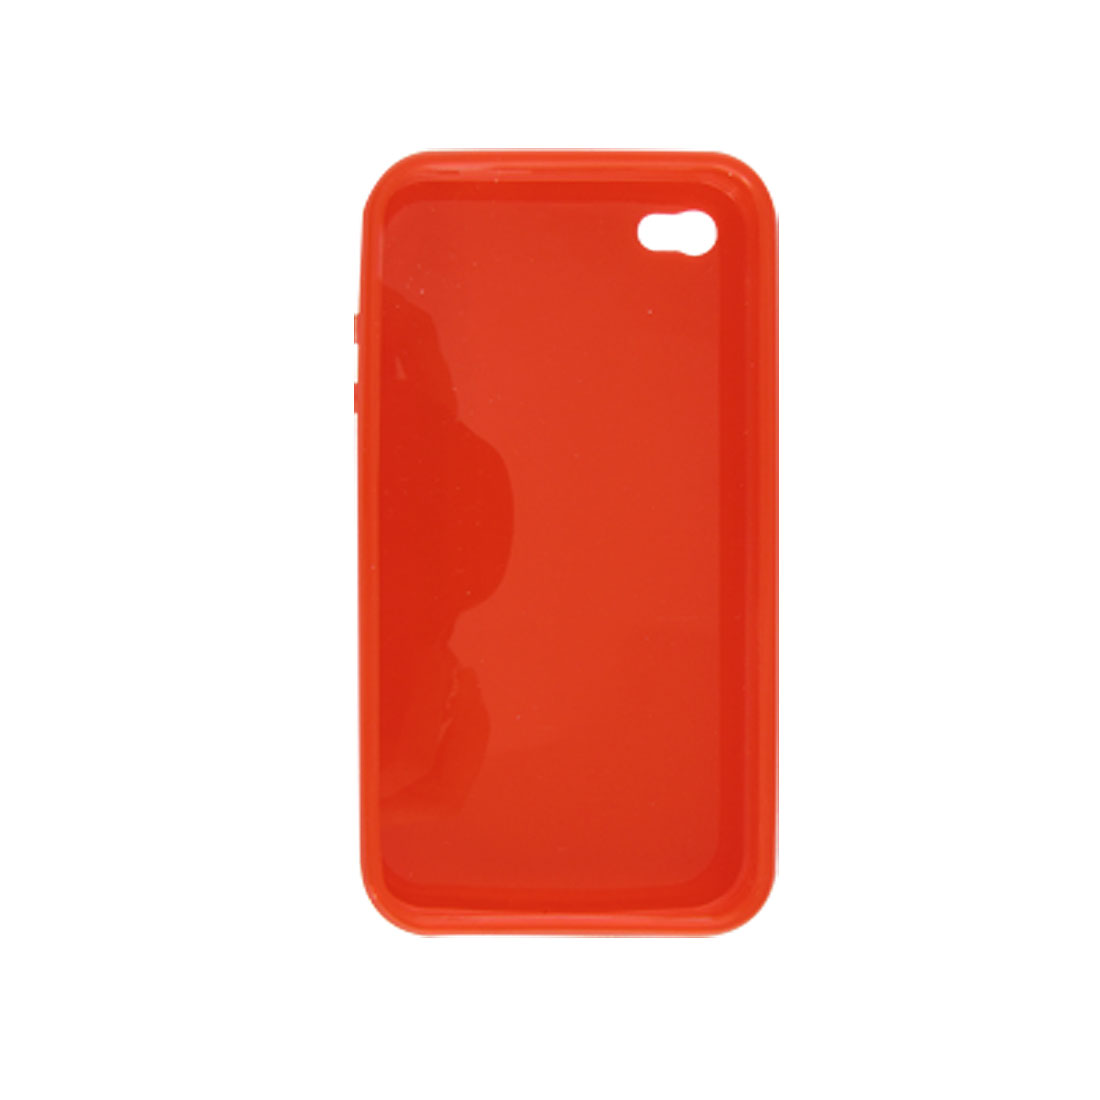 Red Soft Plastic Clear Case Smooth Shell for Apple iPhone 4 4G